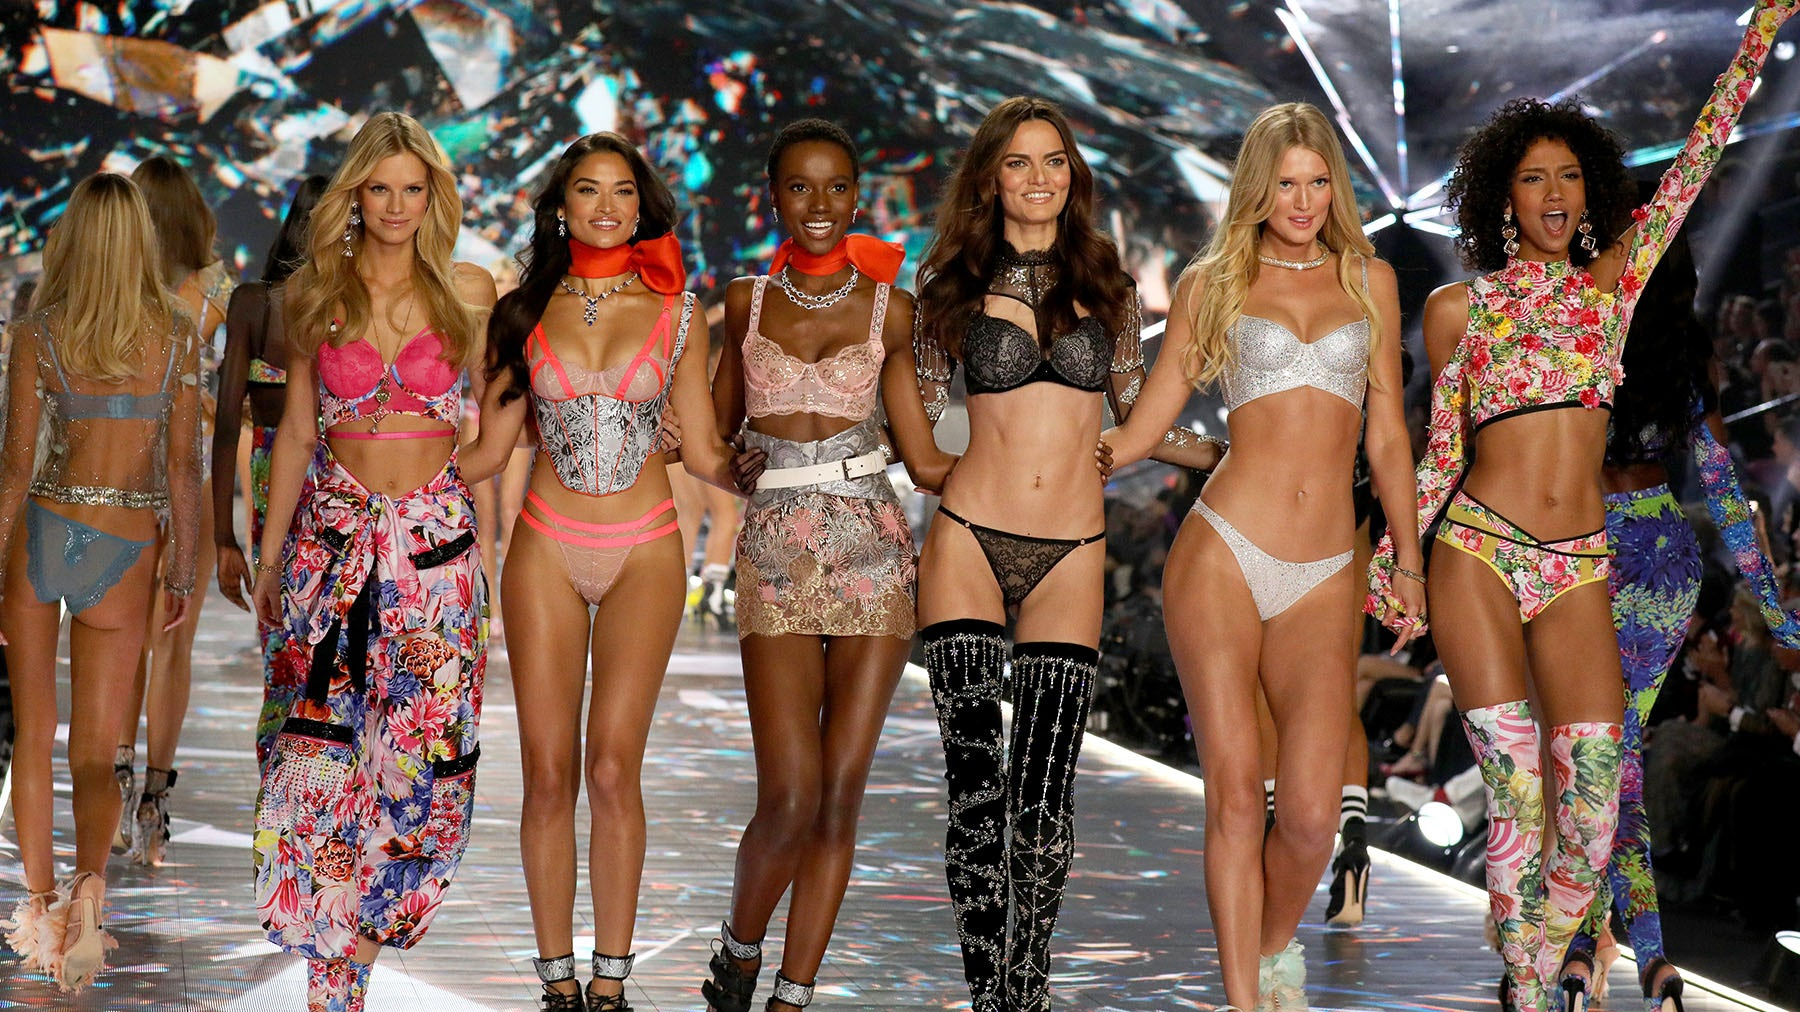 From left: Nadine Leopold, Shanina Shaik, Herieth Paul, Barbara Fialho, Toni Garrn and Aiden Curtiss walk the runway in the 2018 Victoria's Secret Fashion Show in New York | Source: Getty